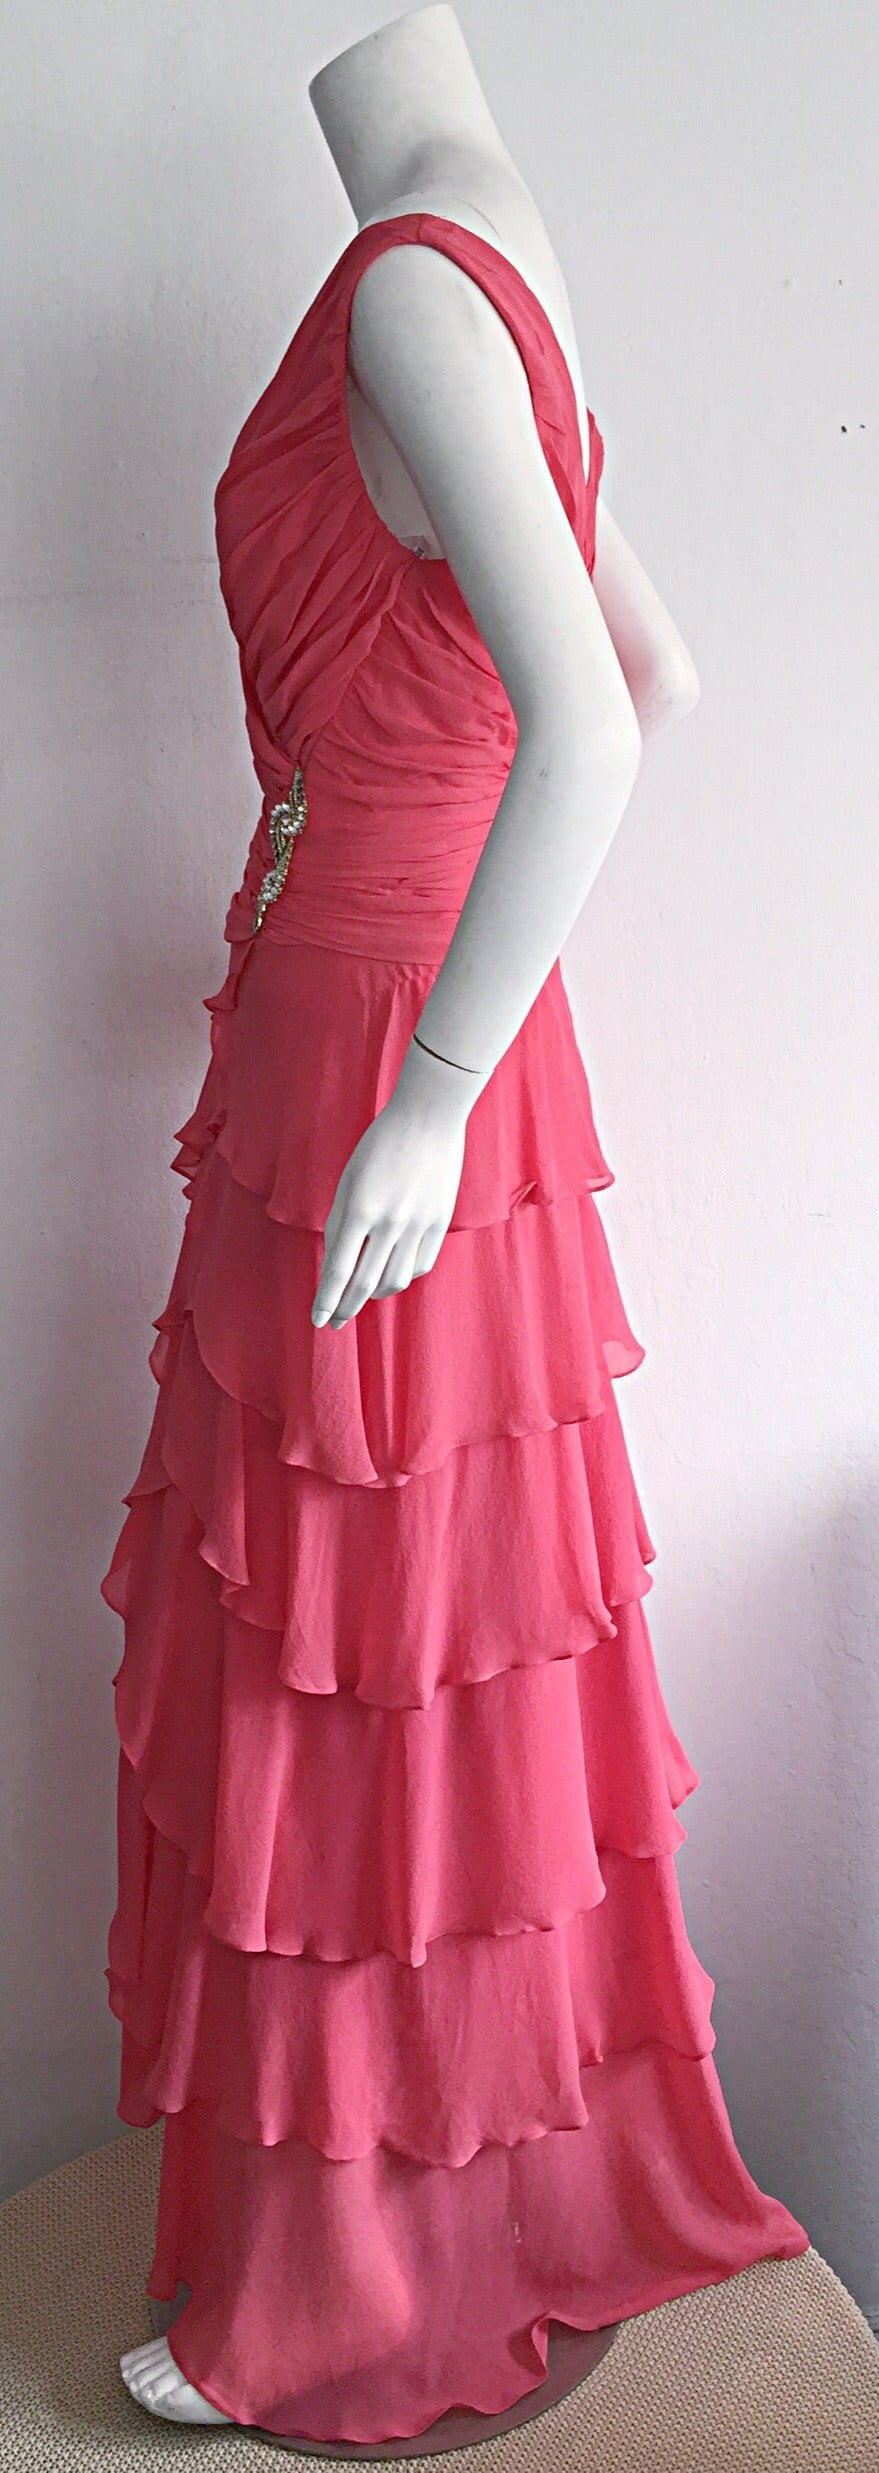 Beautiful 1990s Vintage Tadashi Shoji Pink Silk Chiffon Tiered Dress For Sale 3